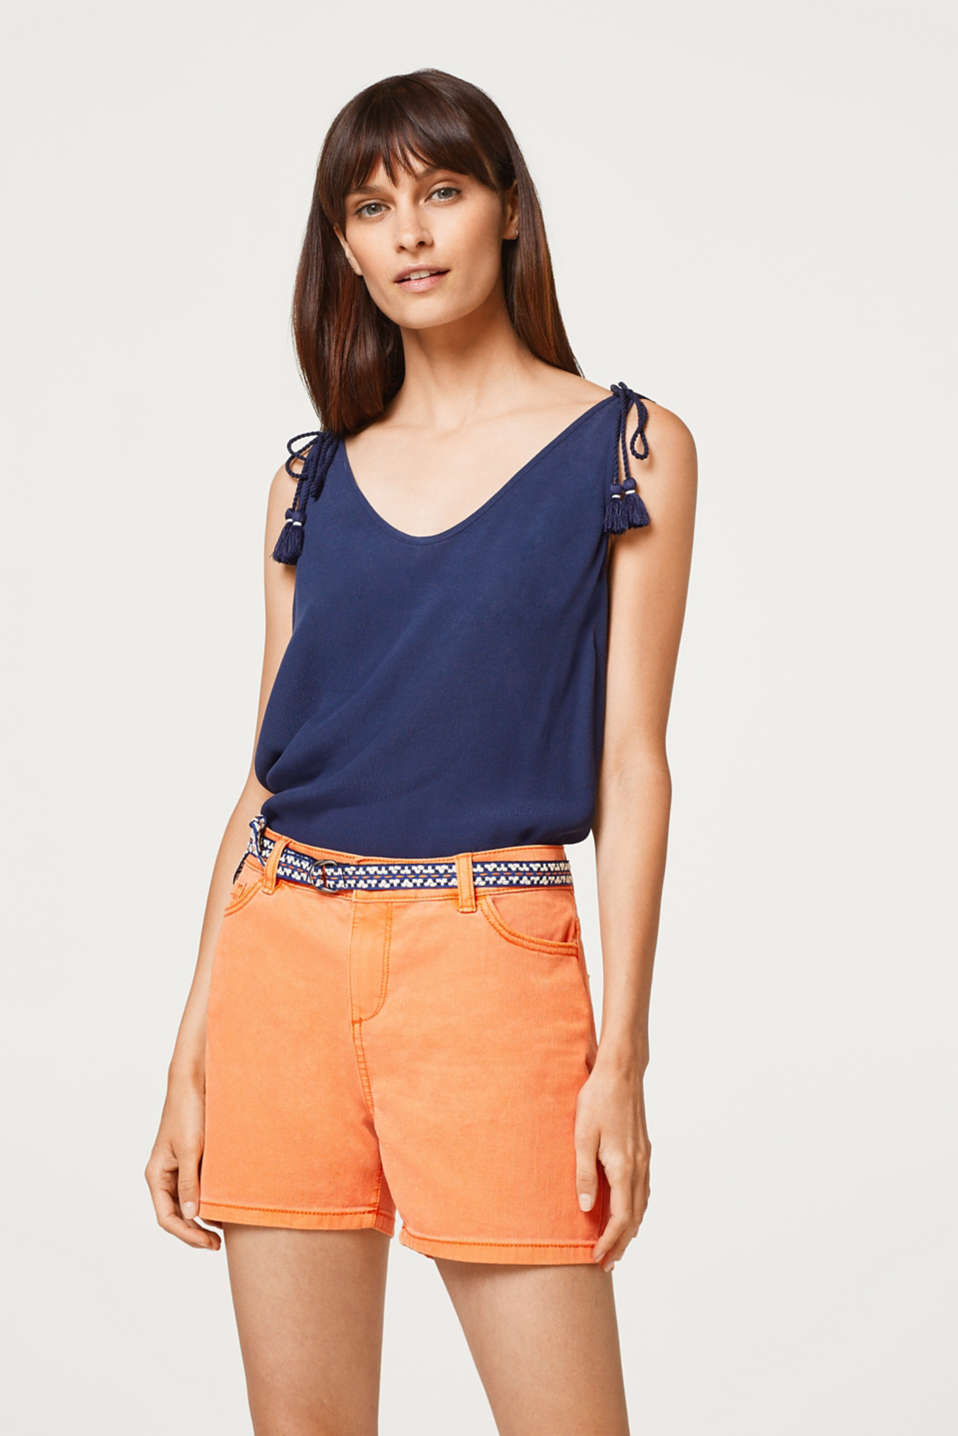 edc - Stretch shorts in blended cotton with a belt